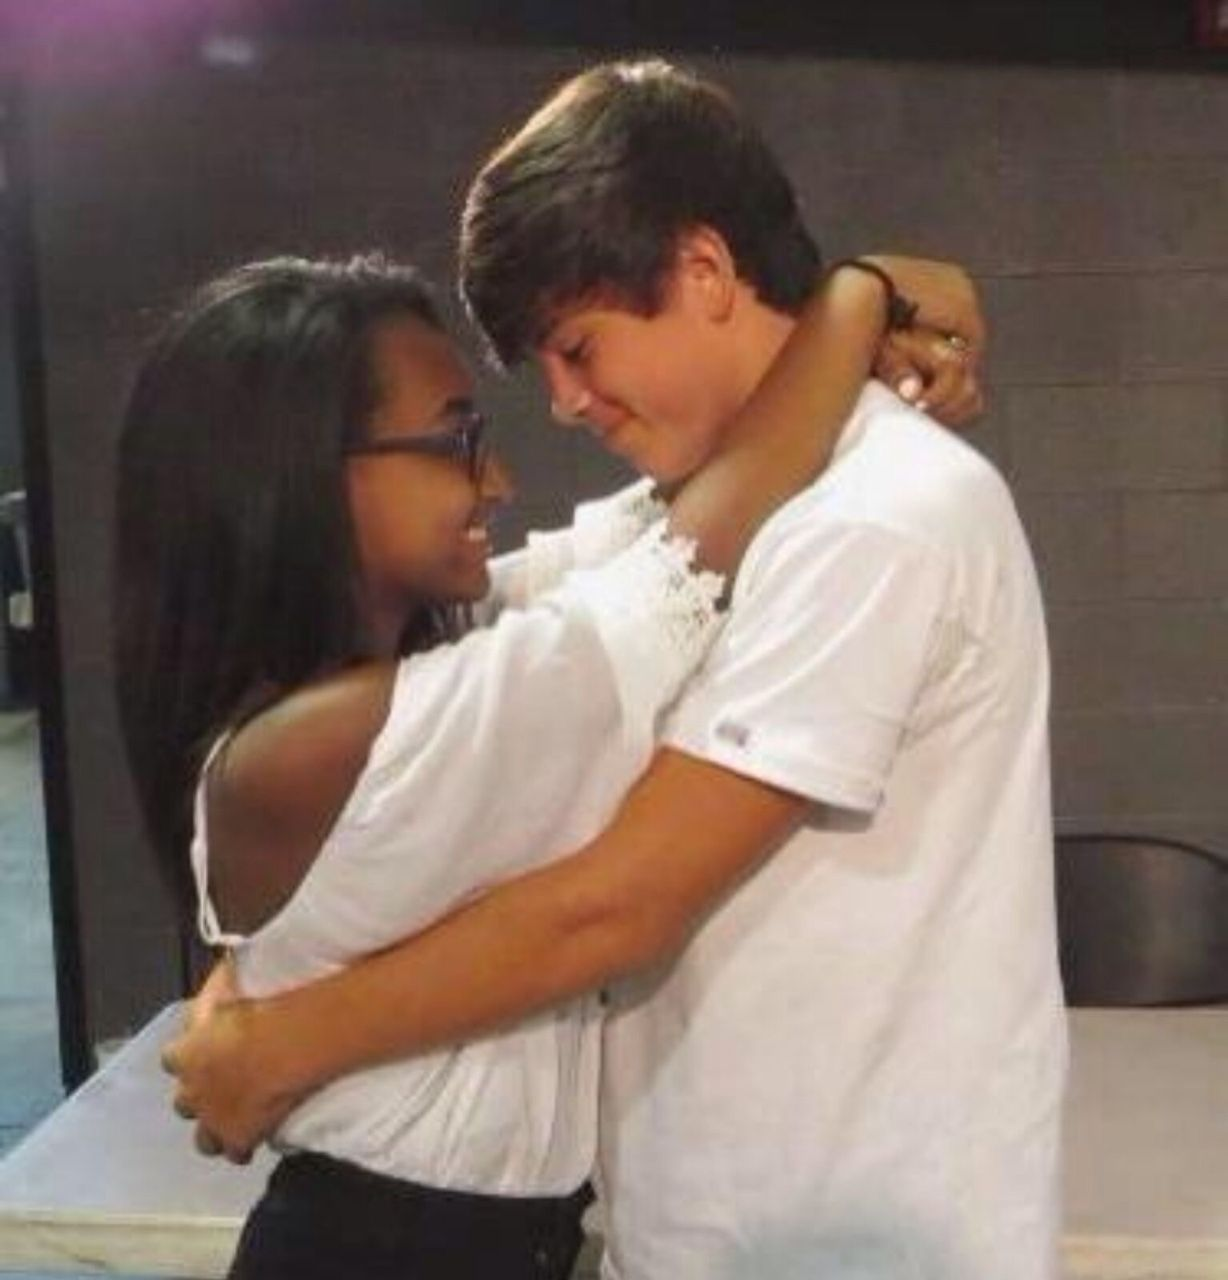 Bwwm life swirl bby hayes with a fan relationship goals bwwm life swirl bby hayes with a fan kristyandbryce Images